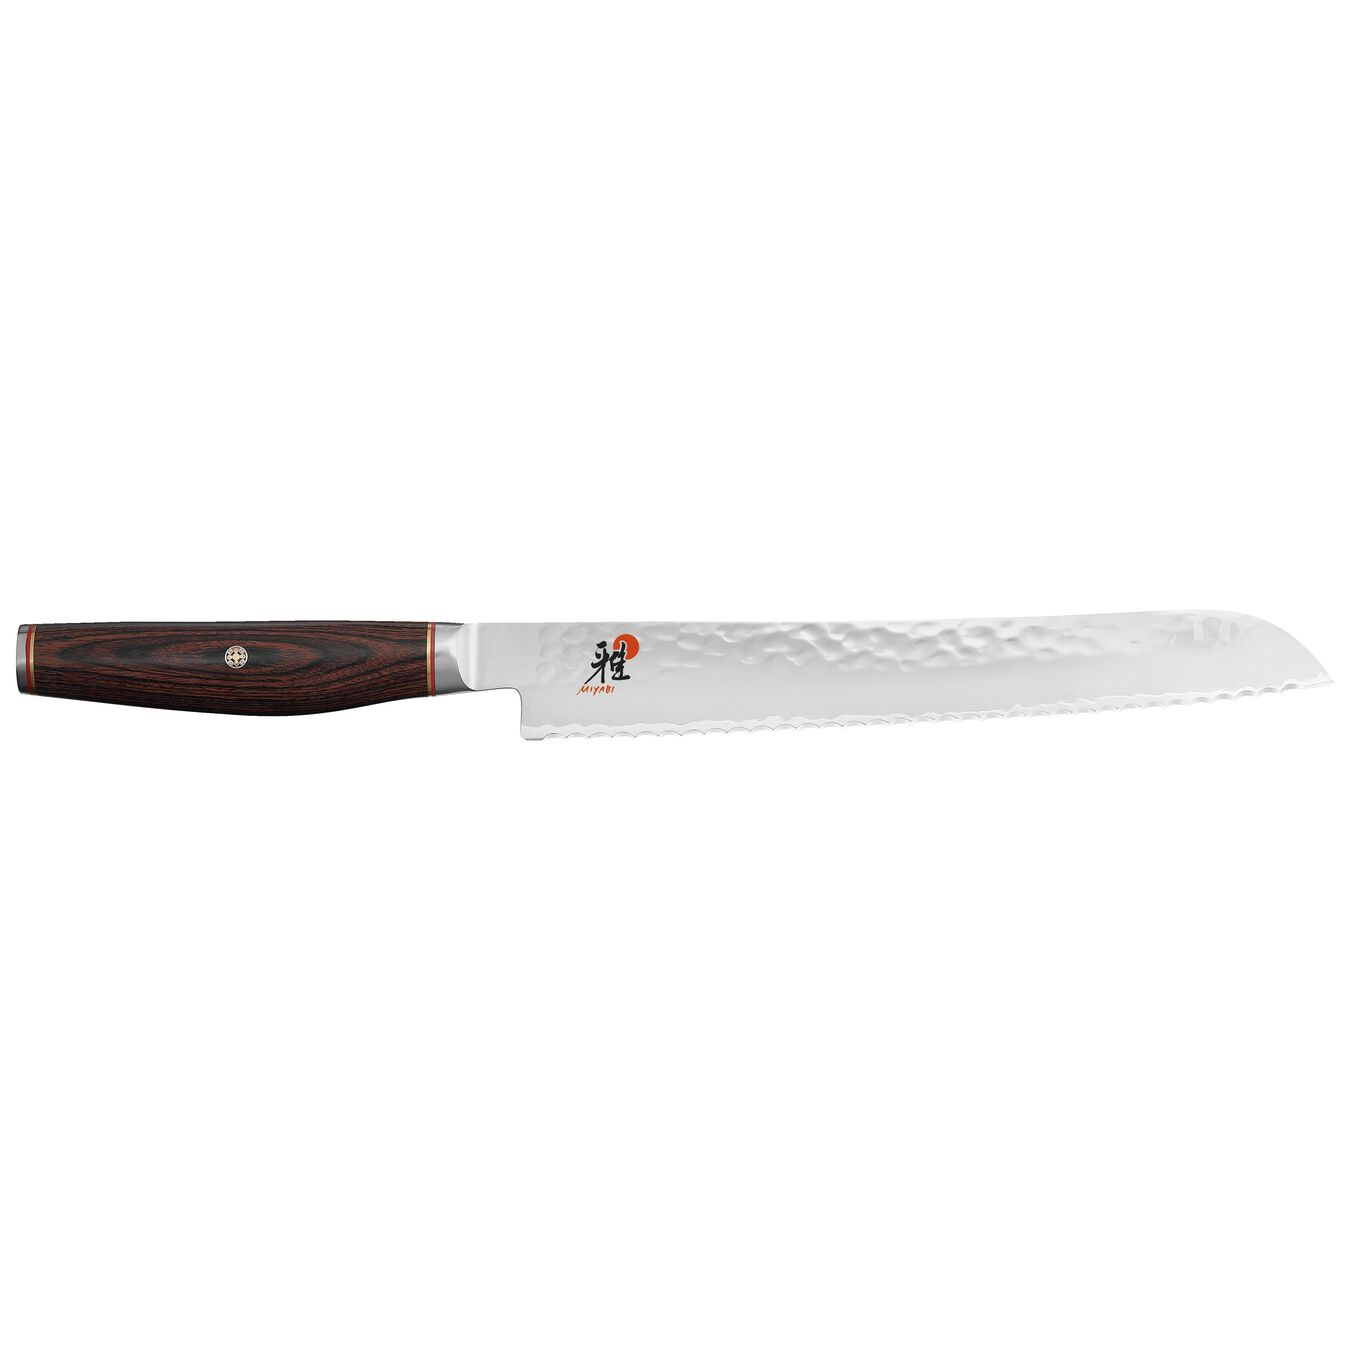 9-inch Bread Knife - Visual Imperfections,,large 1